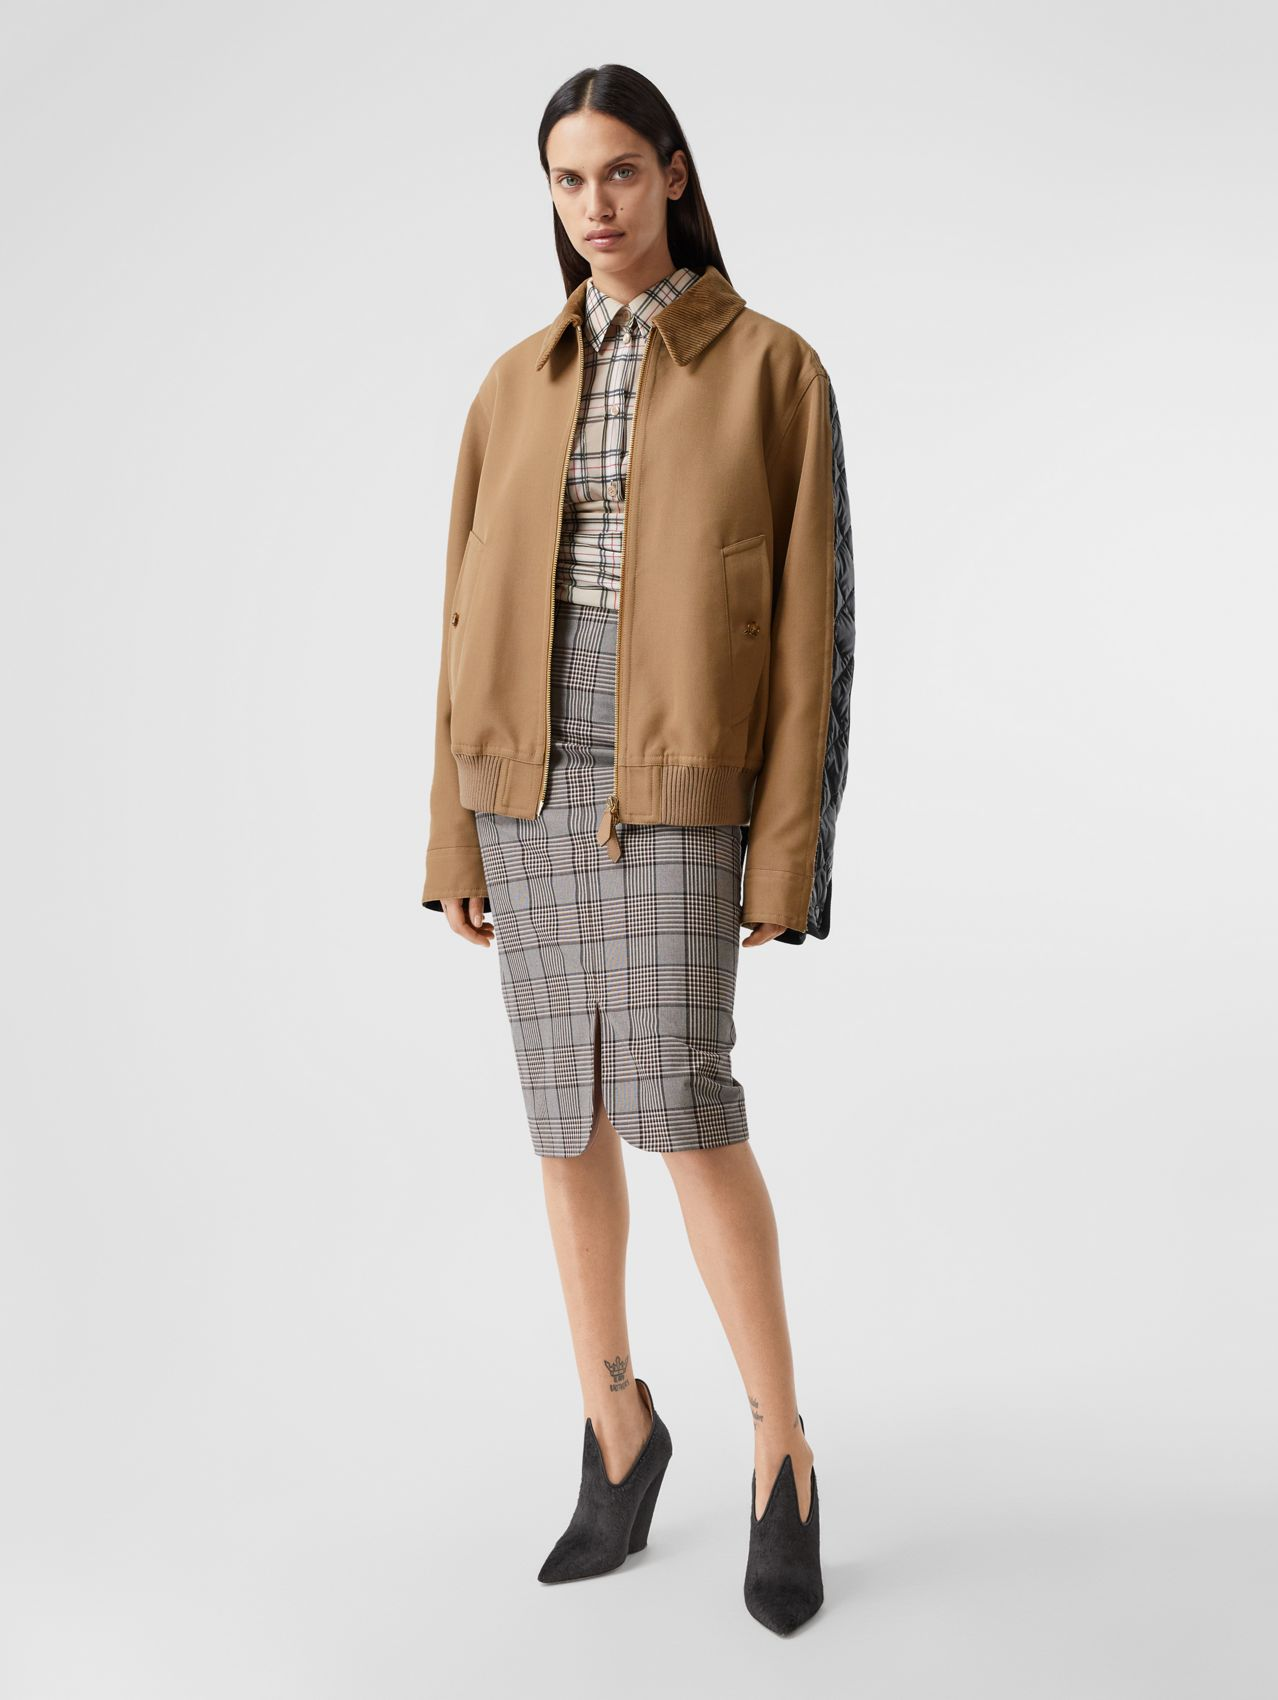 Technical Wool Reconstructed Harrington Jacket in Biscuit